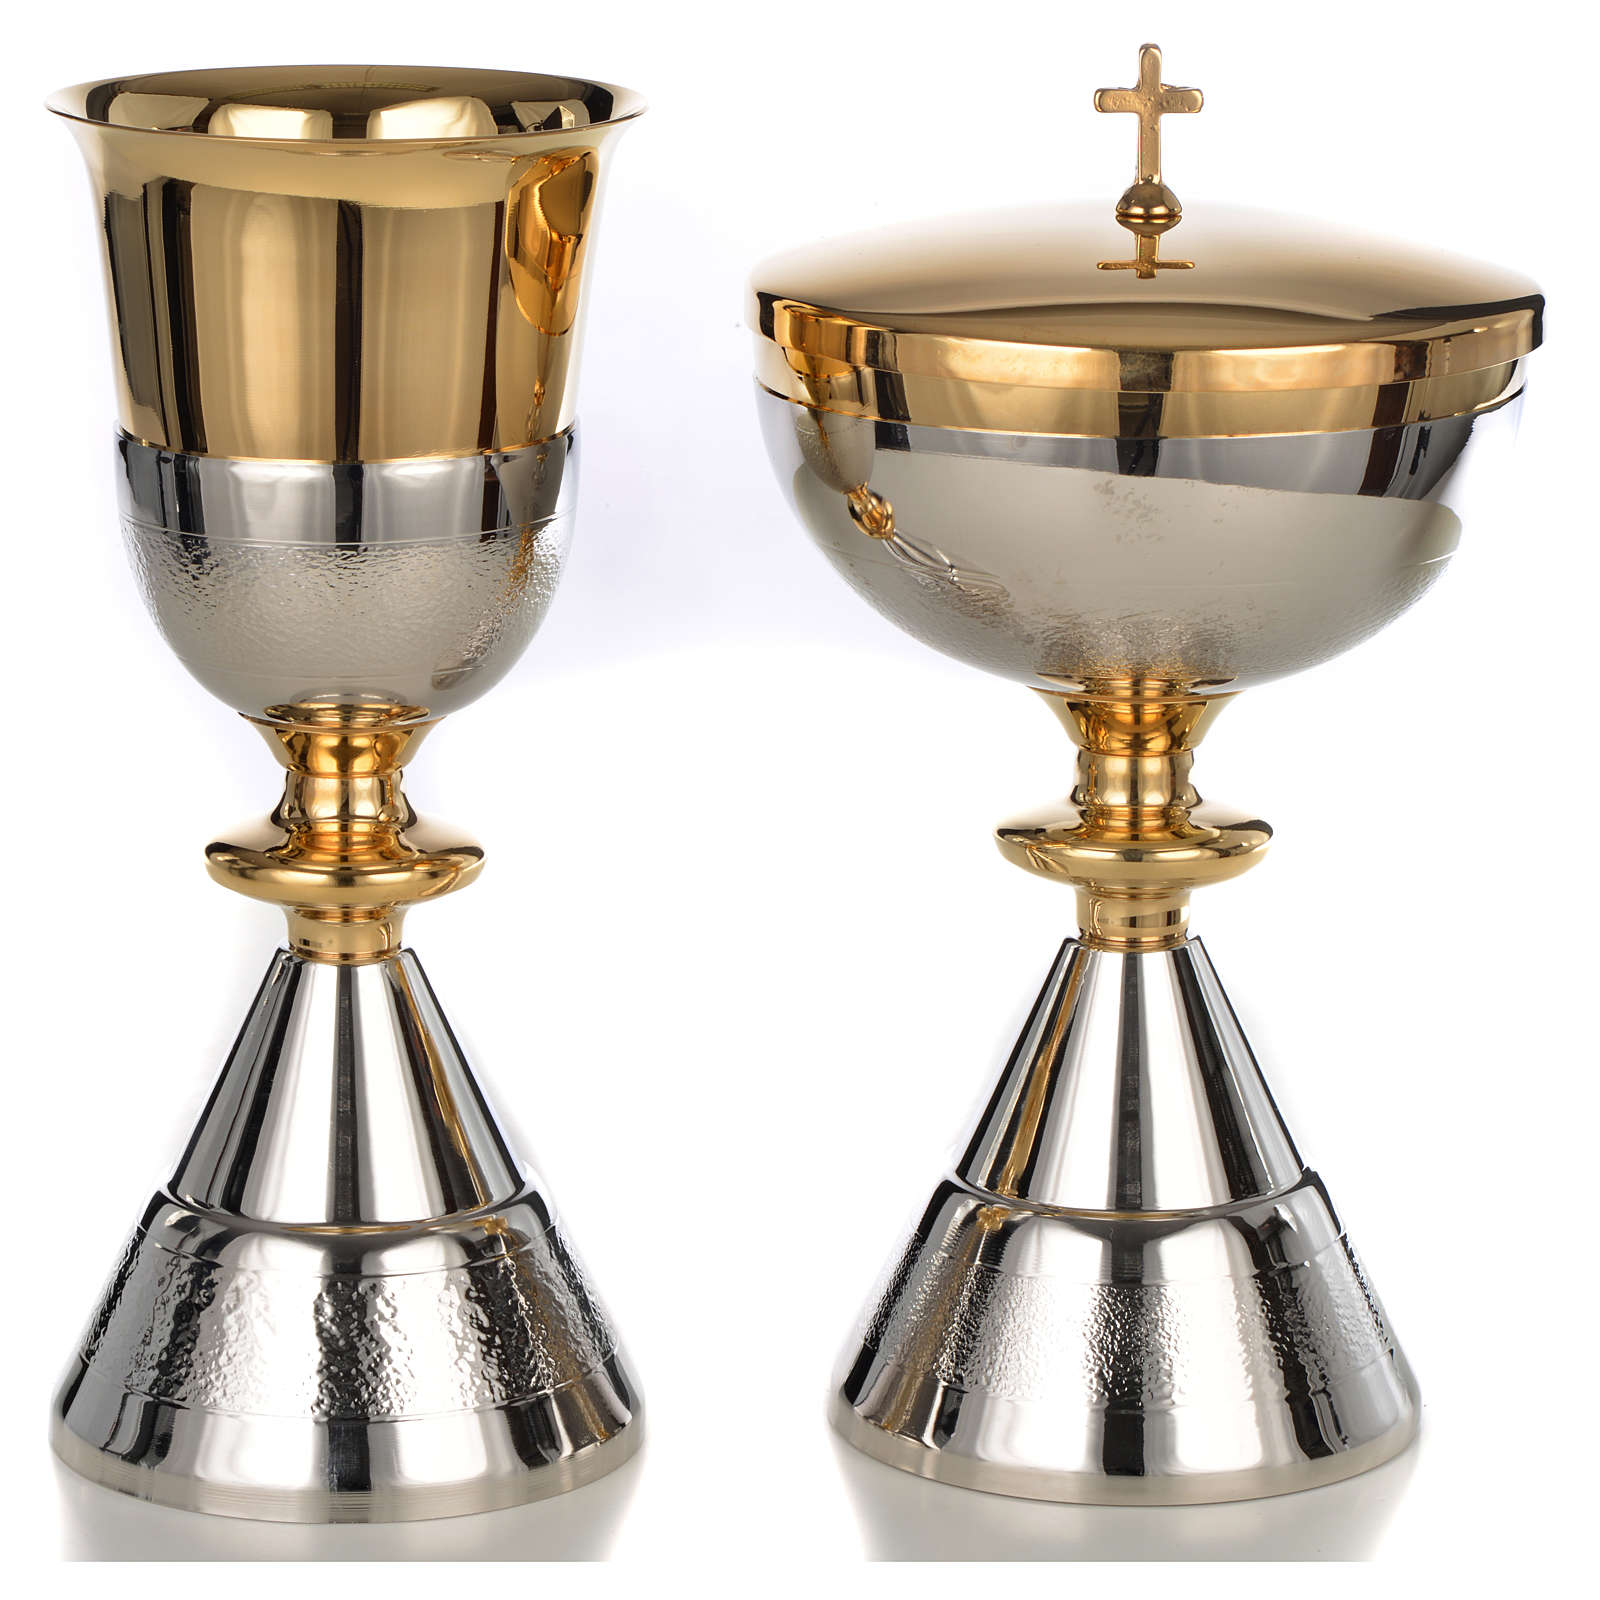 Chalice and Ciborium, golden and silver decoration, knurled 4